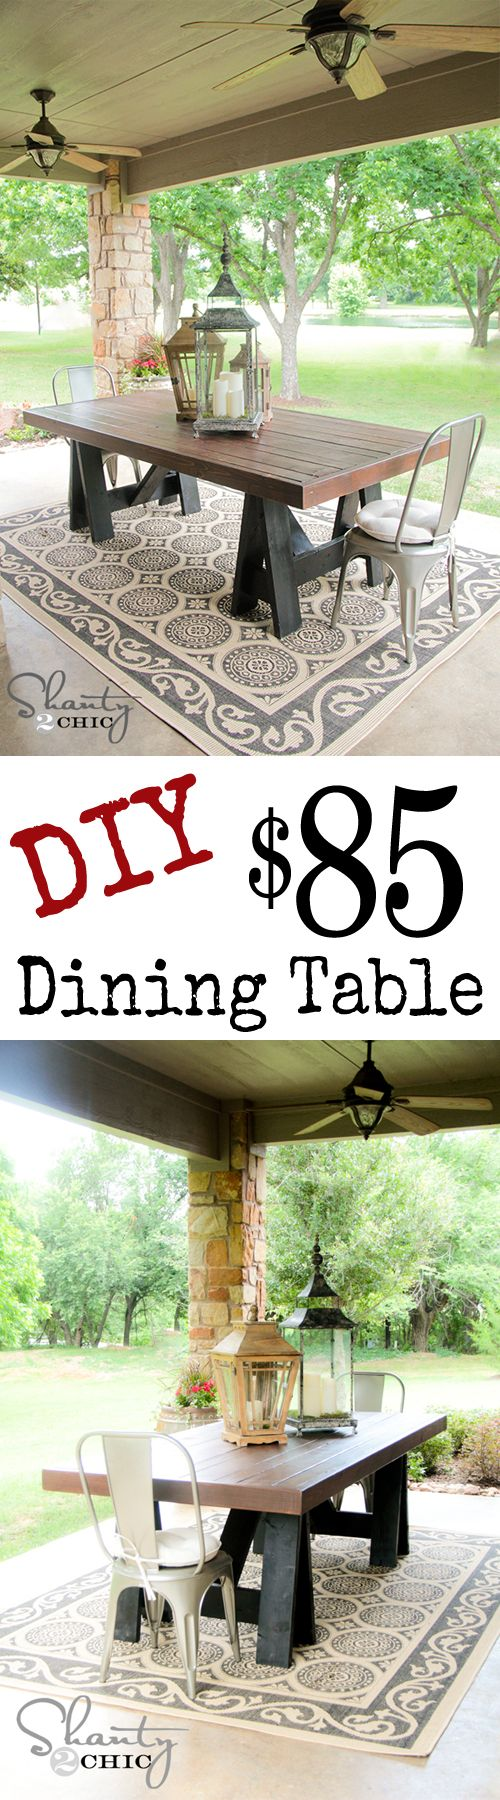 DIY Pottery Barn Dining Table!  LOVE! title='Sh...>